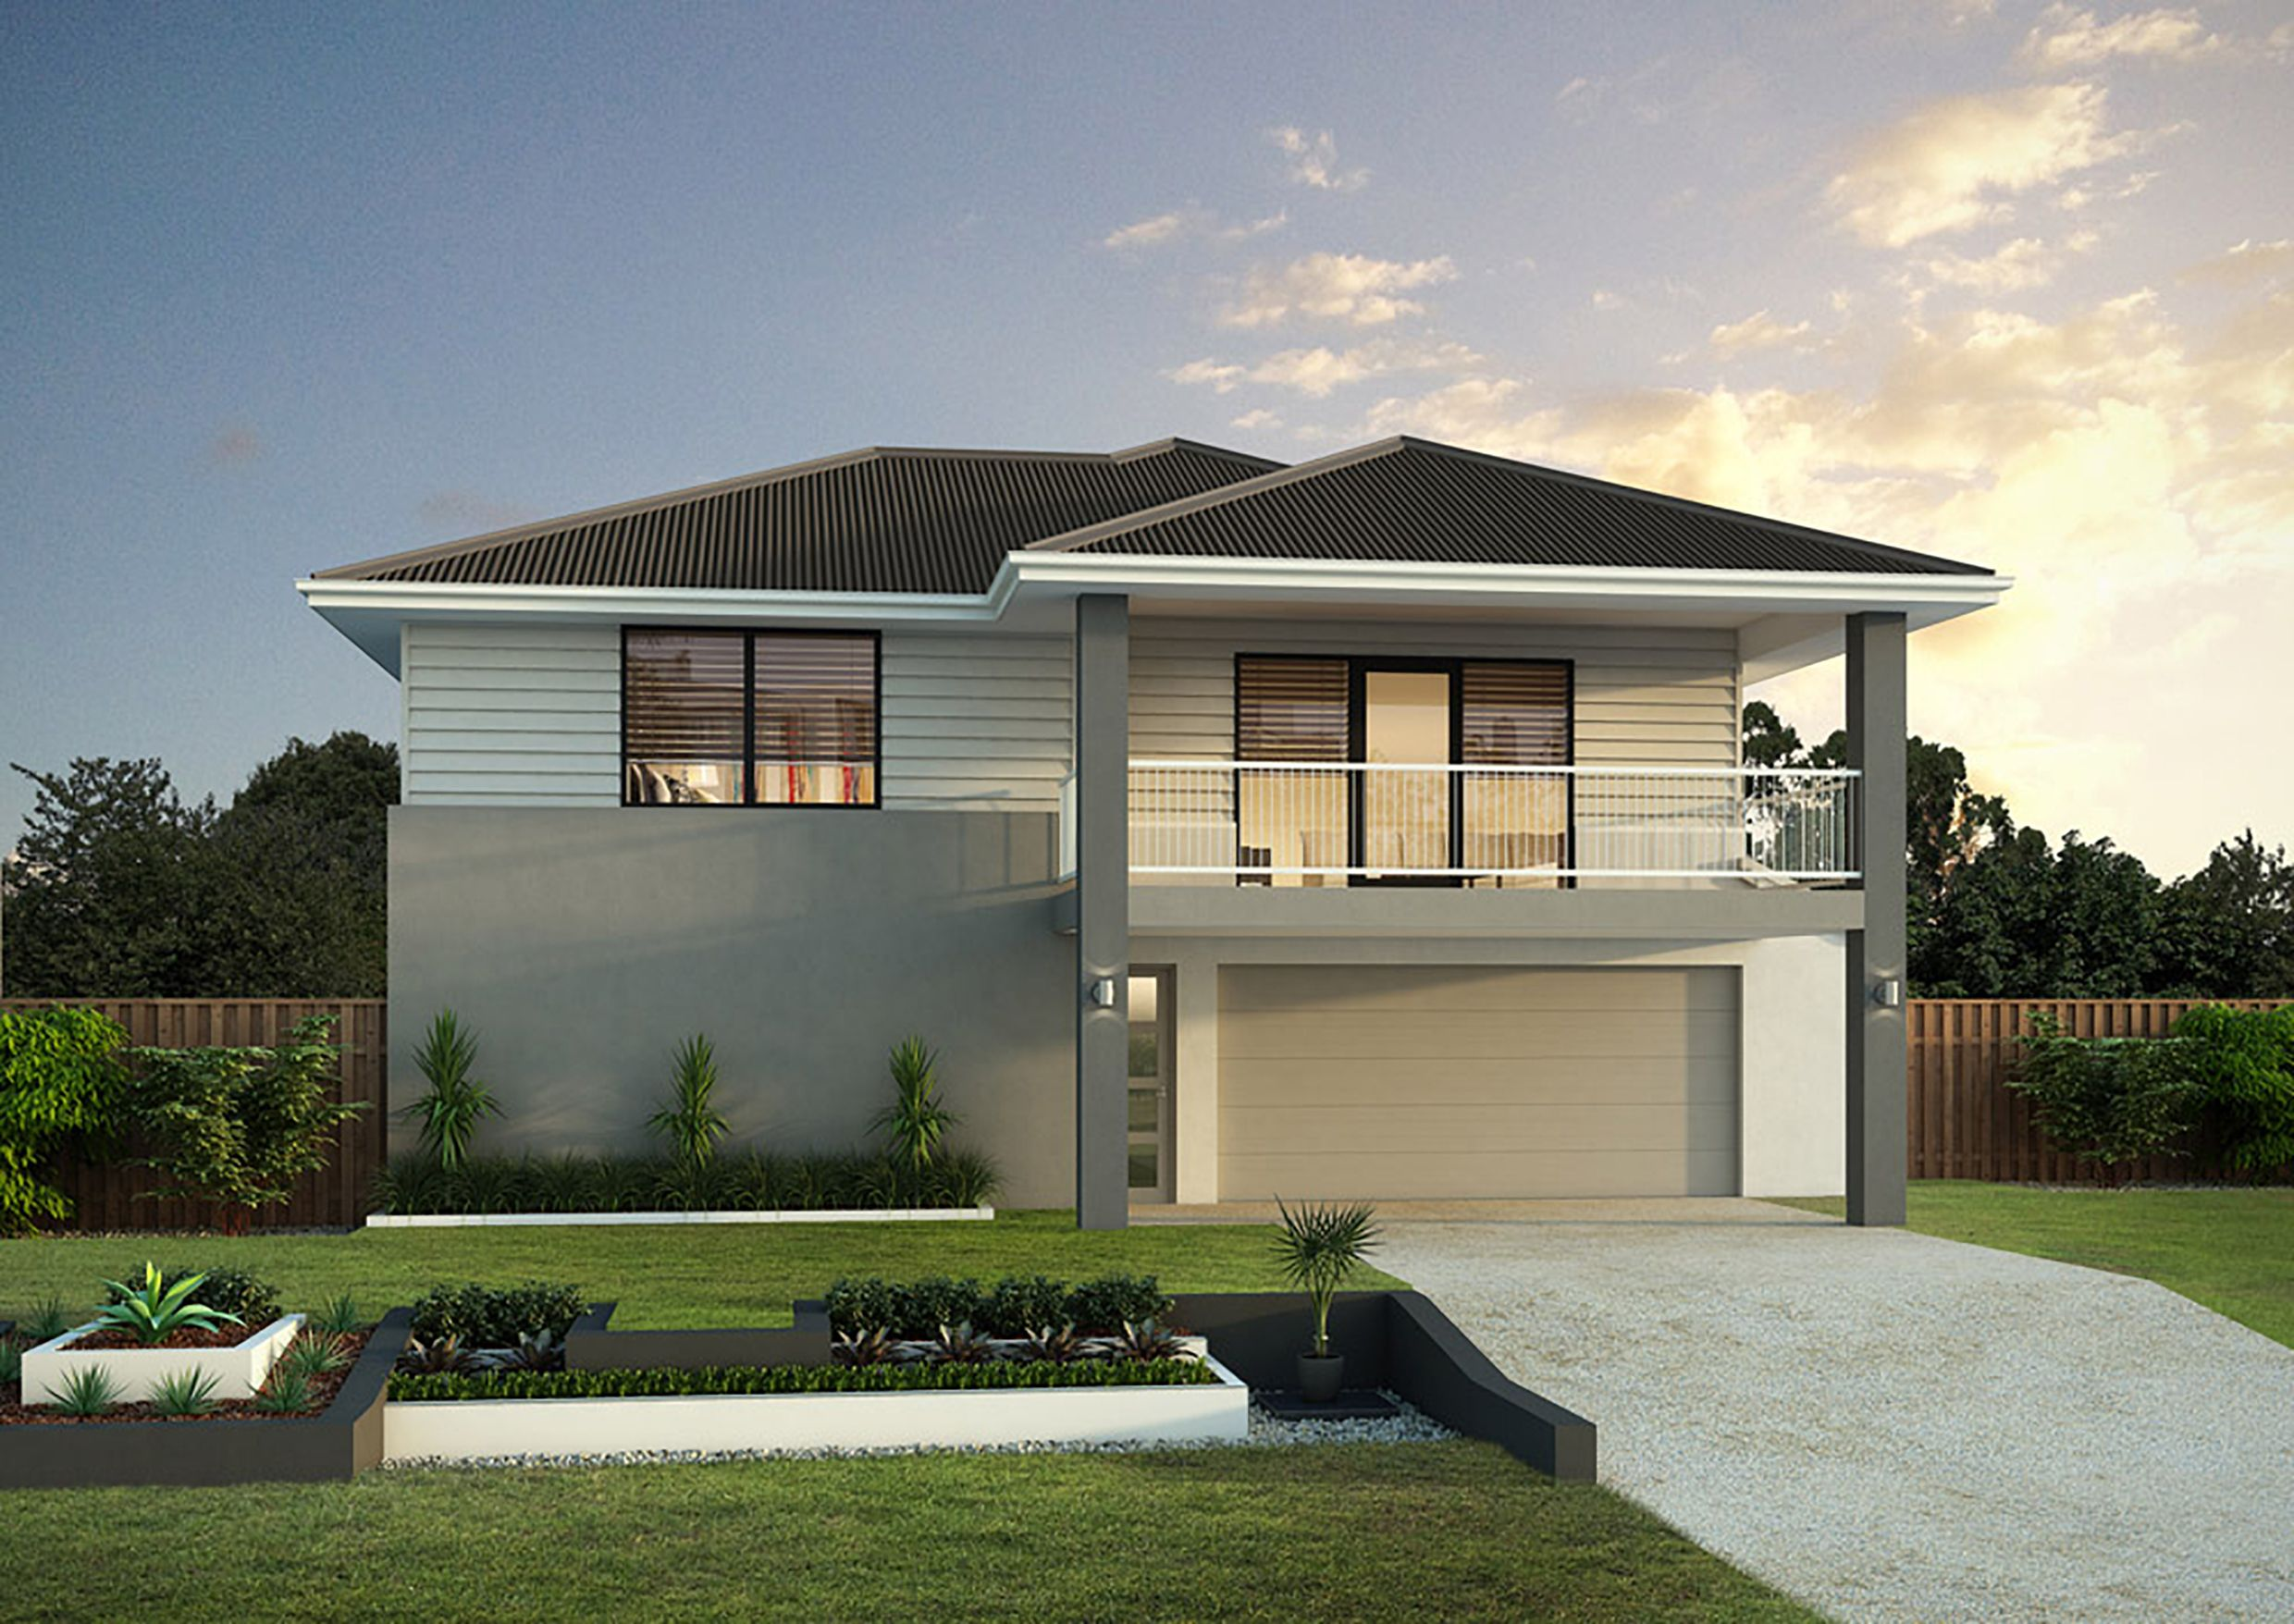 Best Hip Roof With A Covered Balcony Modern Roofing Roof 400 x 300